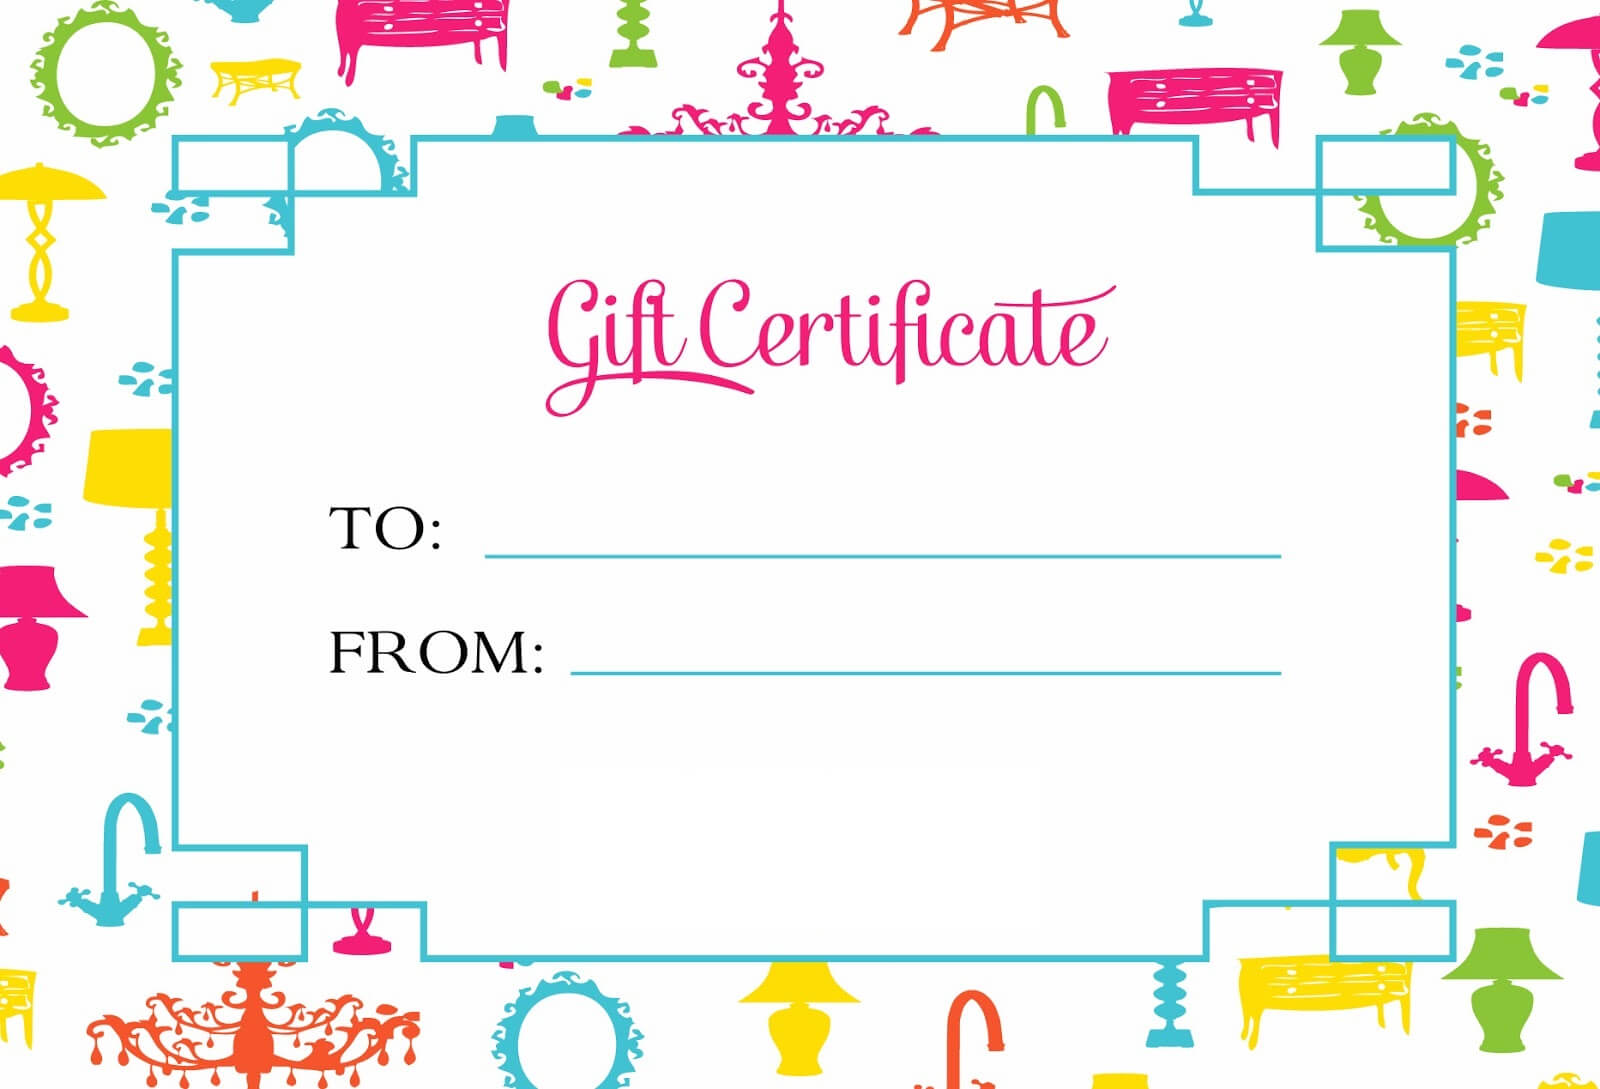 Gift Certificate Template For Kids Blanks   Loving Printable Within Kids Gift Certificate Template